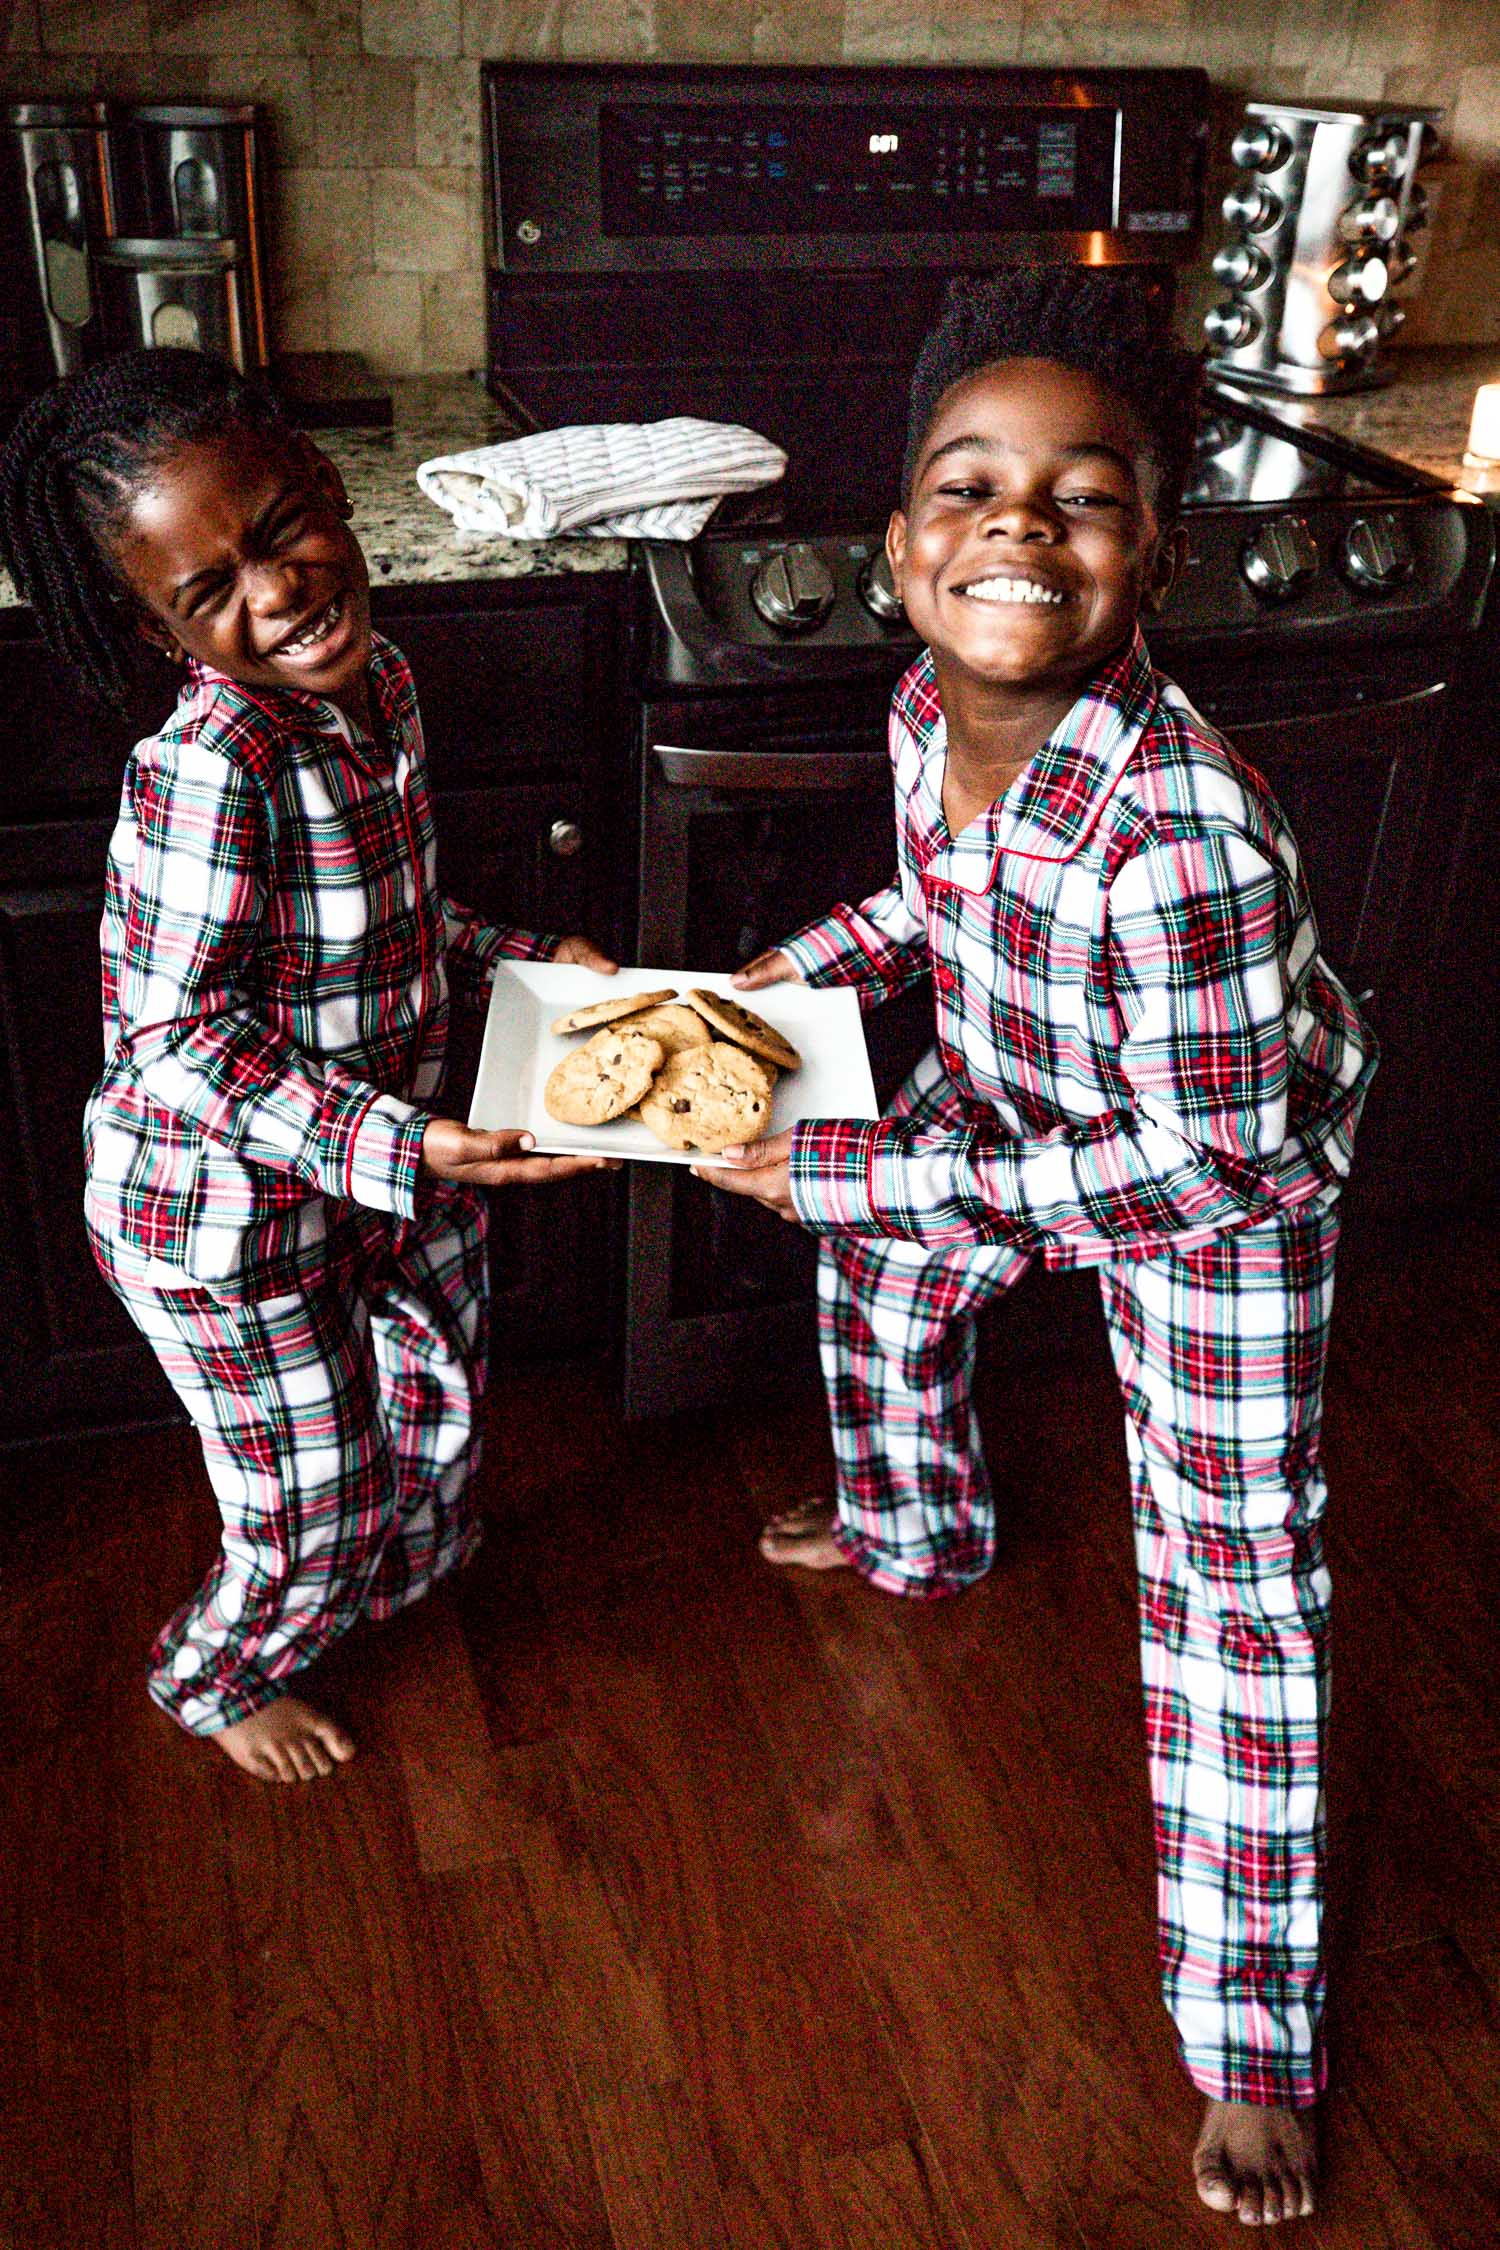 The cutest pajama sets from macy's.